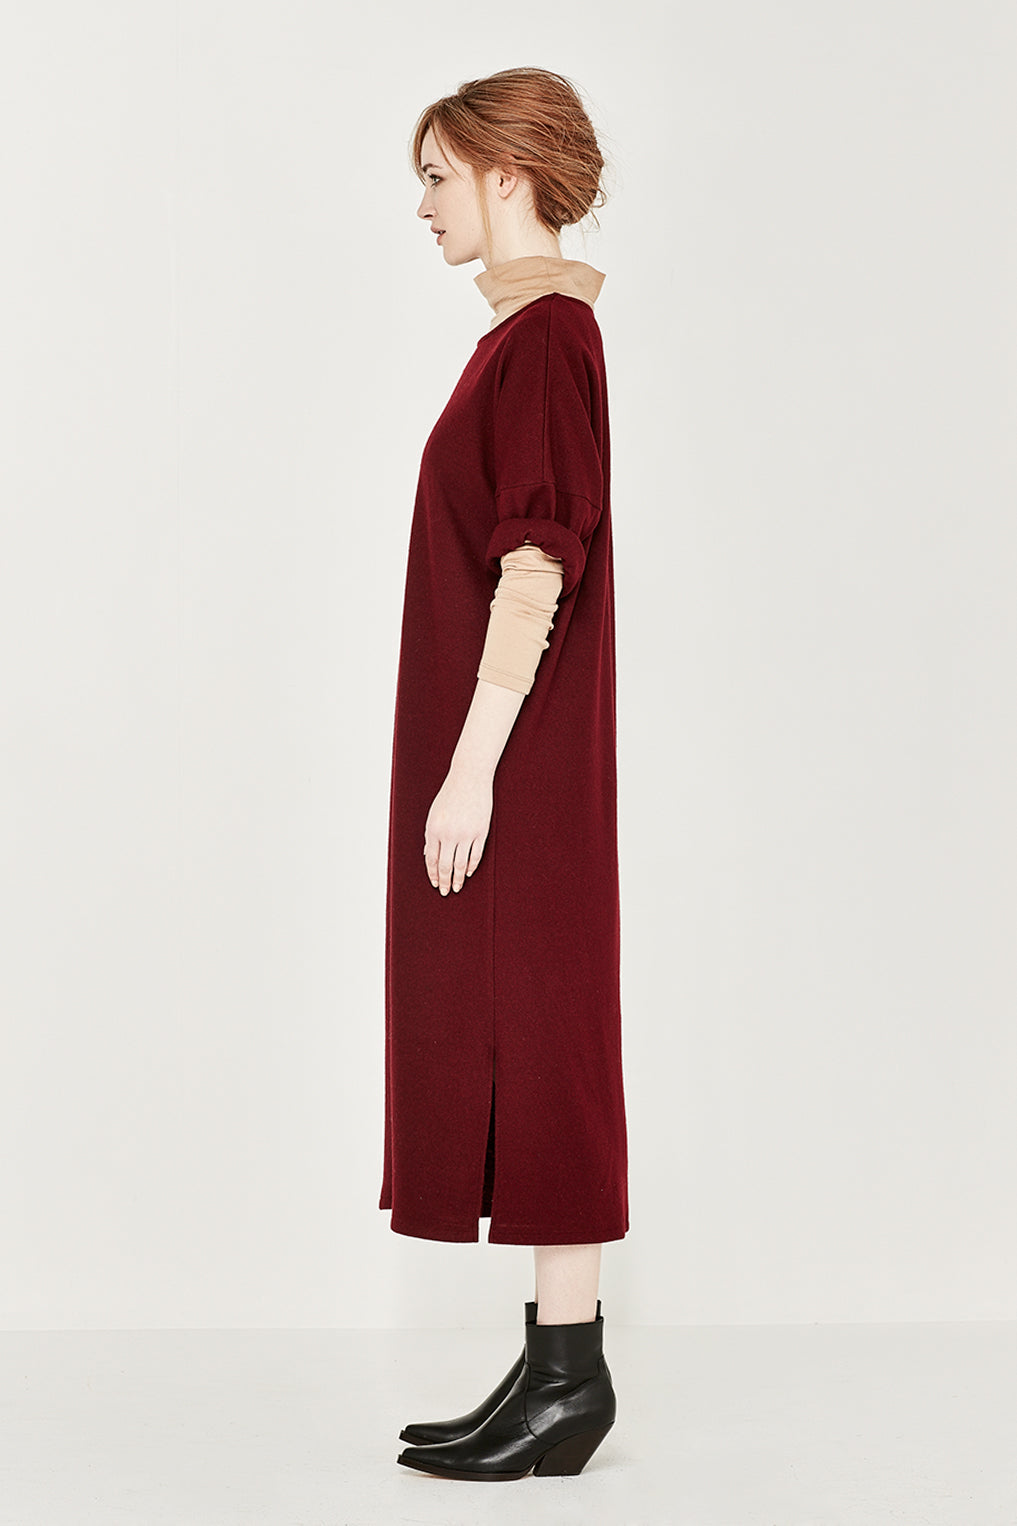 The Maton Dress in Merlot